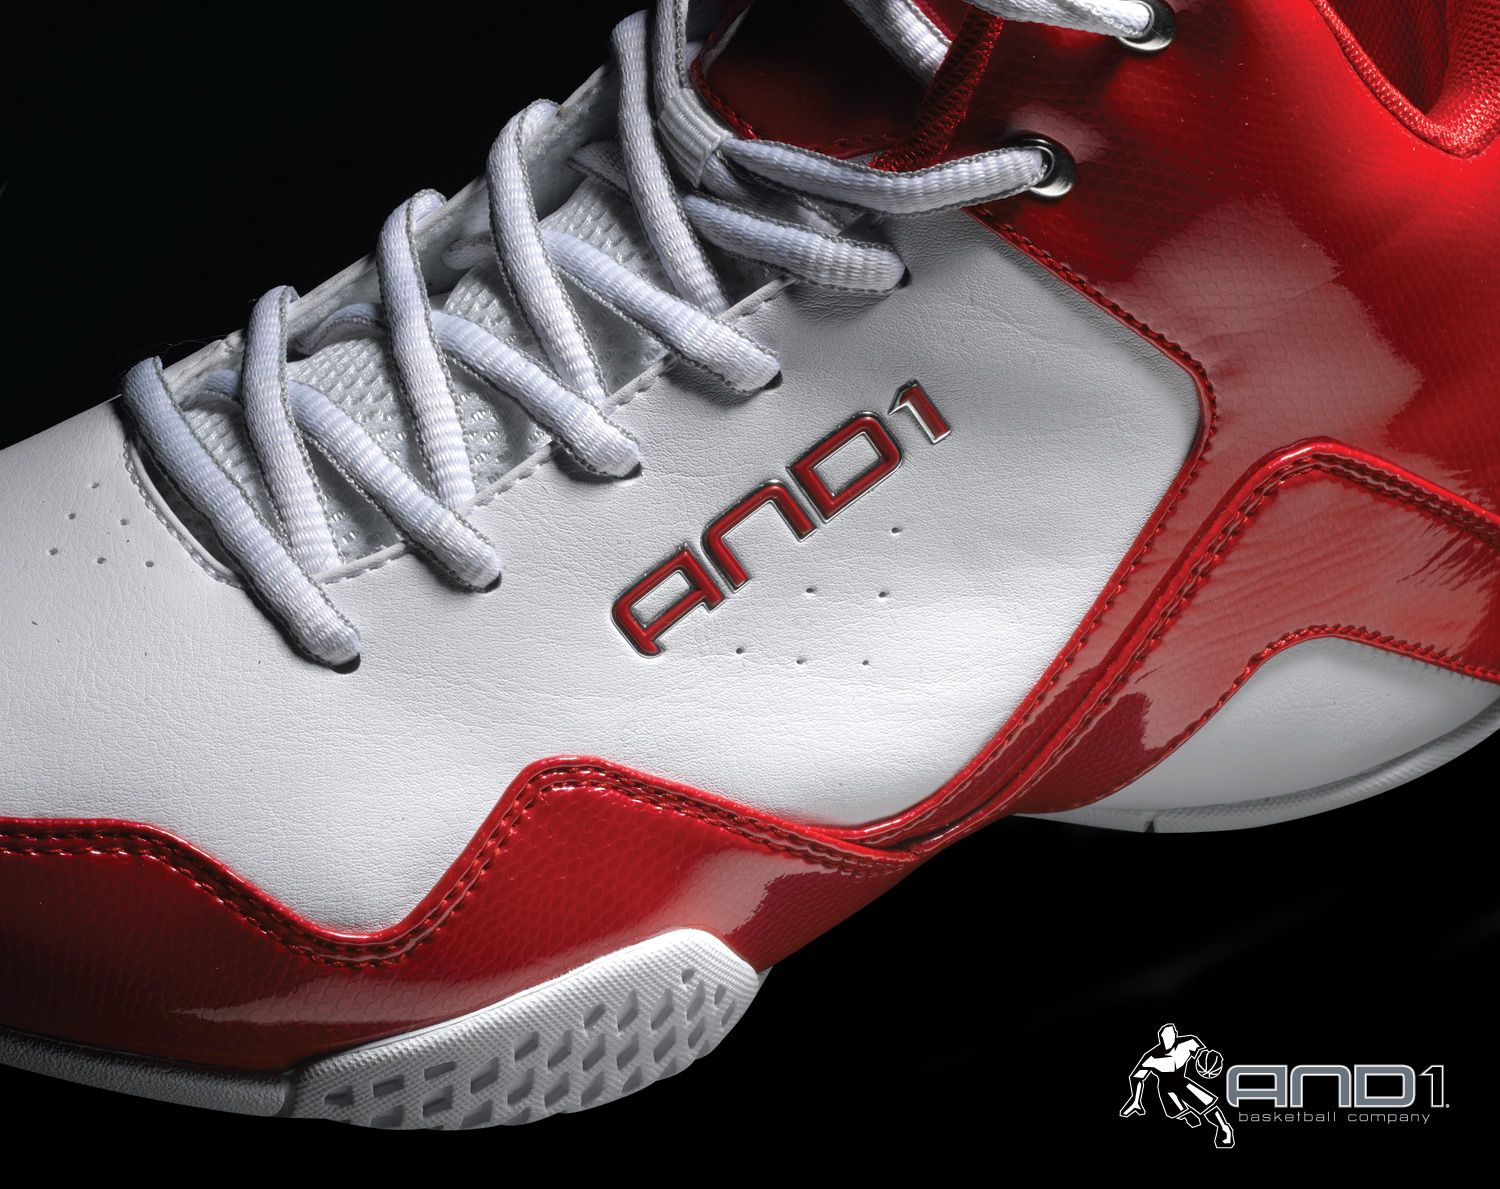 half price brand new huge selection of AND 1 Straight Cash Mid - www.and1.com | Performance | Shoes ...